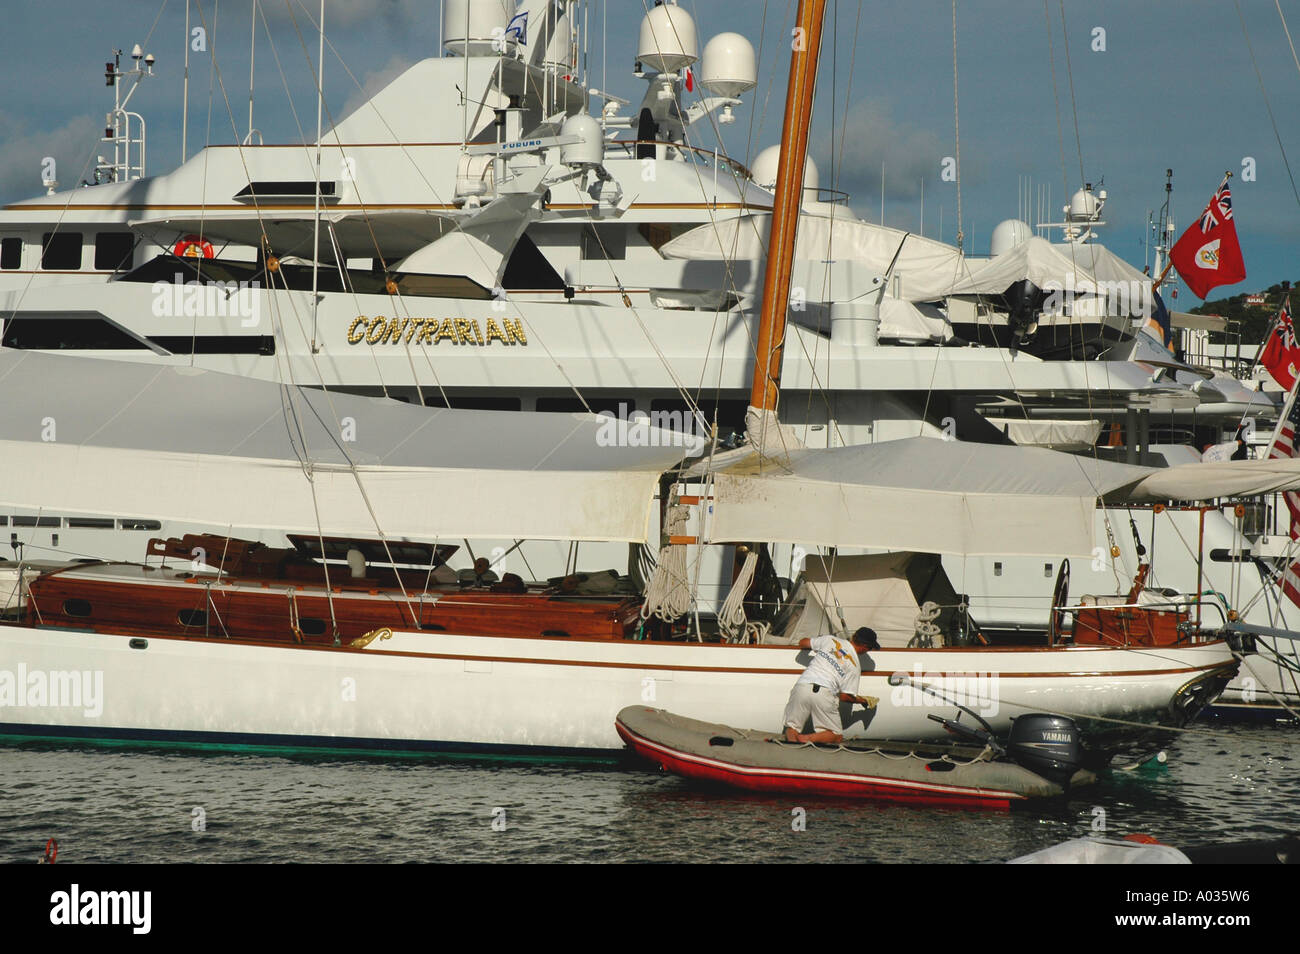 St Barths St Barts Gustavia Harbor luxury yachts crewman cleaning hull - Stock Image